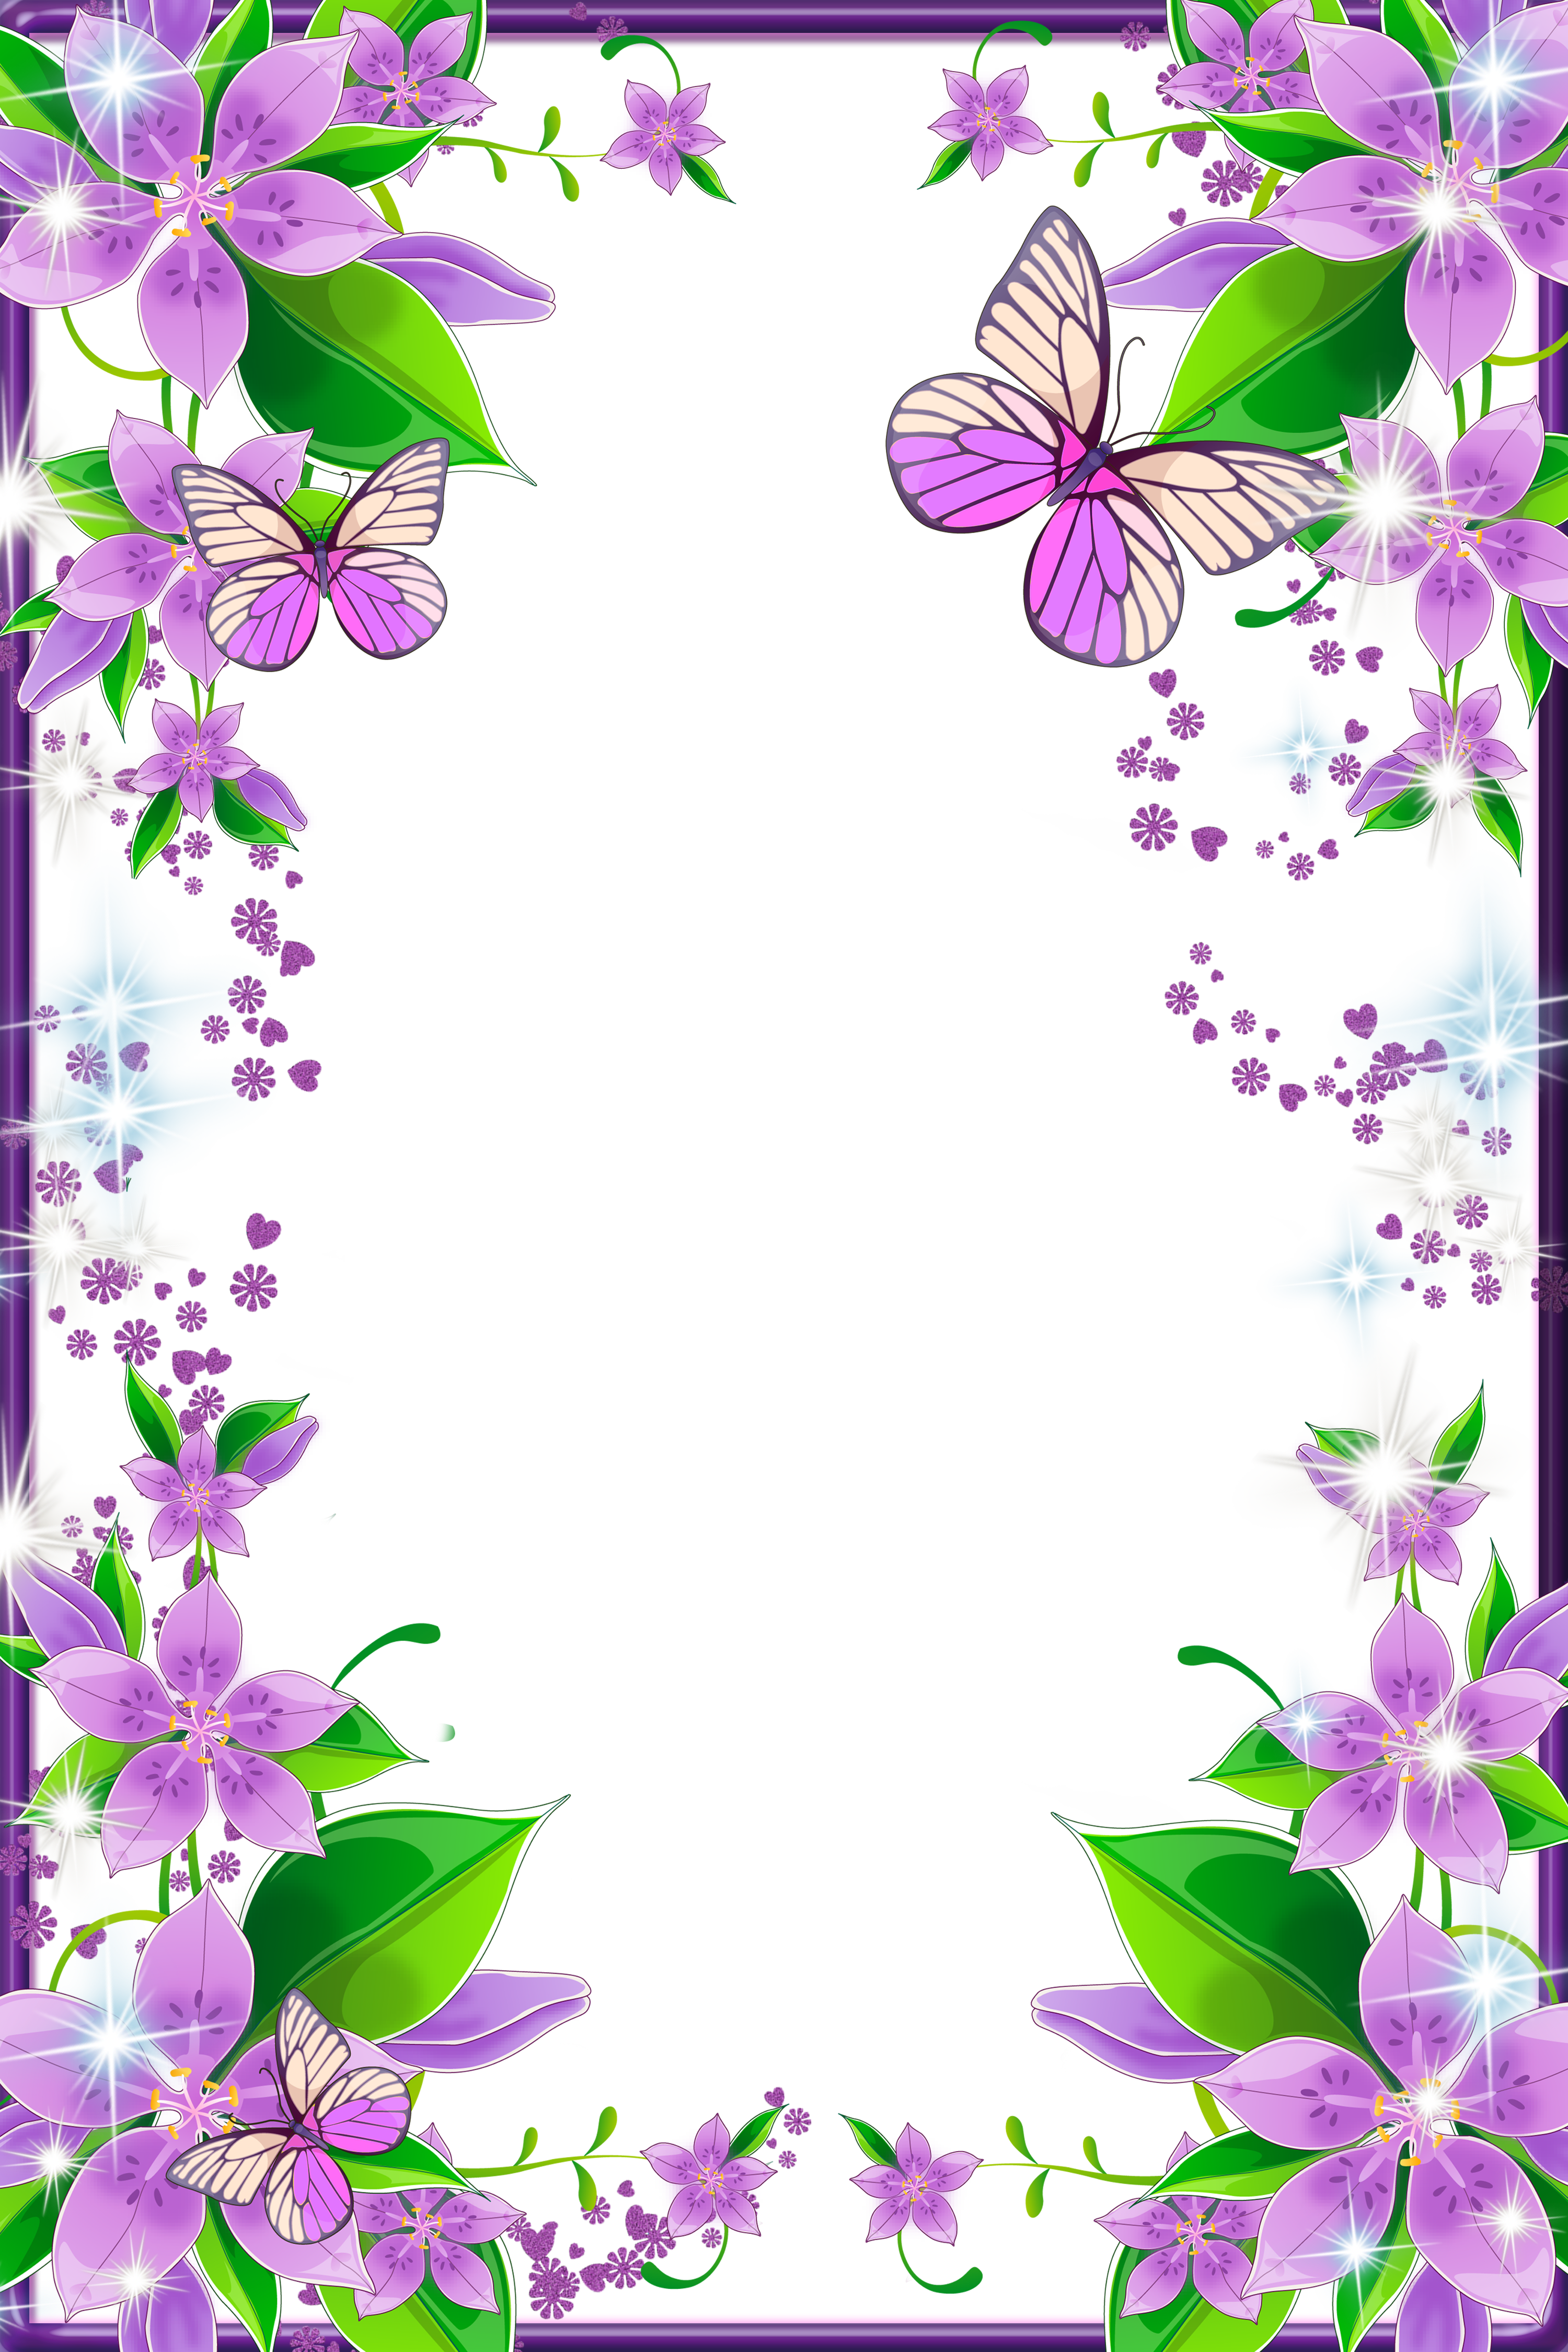 Light purple flowers and. Butterfly clipart picture frame